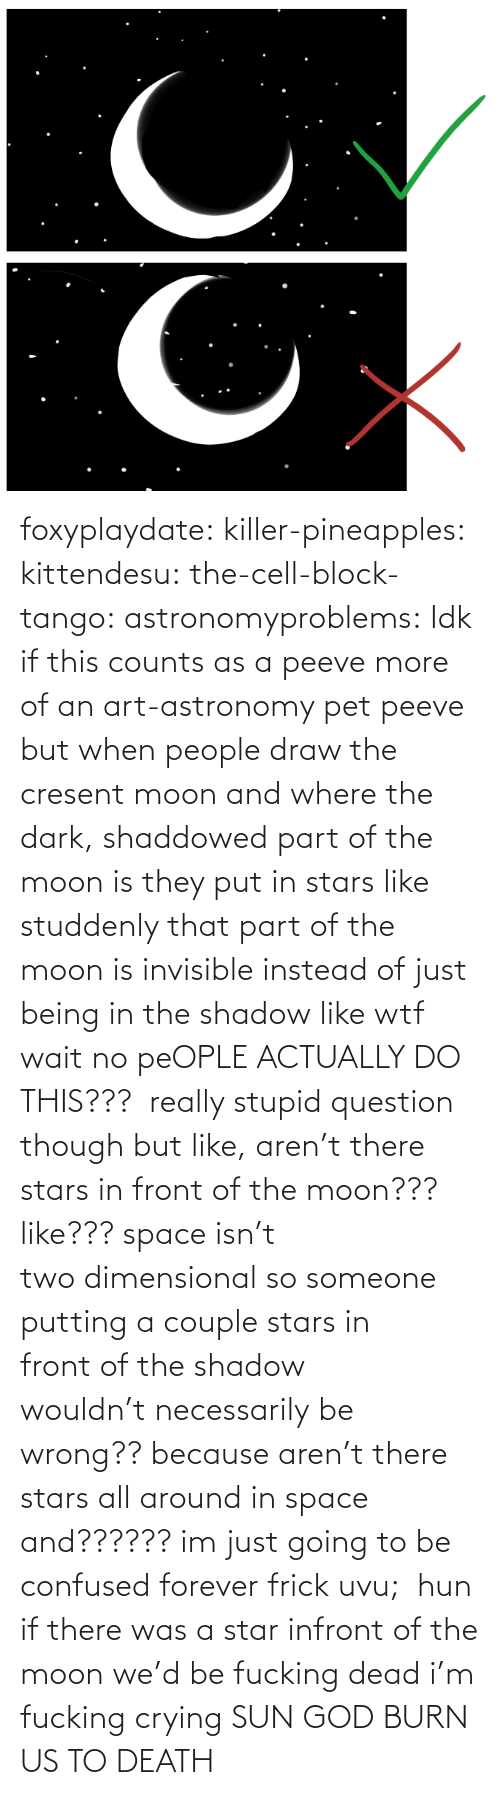 the moon: foxyplaydate: killer-pineapples:  kittendesu:  the-cell-block-tango:  astronomyproblems:  Idk if this counts as a peeve more of an art-astronomy pet peeve but when people draw the cresent moon and where the dark, shaddowed part of the moon is they put in stars like studdenly that part of the moon is invisible instead of just being in the shadow like wtf  wait no peOPLE ACTUALLY DO THIS???   really stupid question though but like, aren't there stars in front of the moon??? like??? space isn't two dimensional so someone putting a couple stars in front of the shadow wouldn't necessarily be wrong?? because aren't there stars all around in space and?????? im just going to be confused forever frick uvu;   hun if there was a star infront of the moon we'd be fucking dead  i'm fucking crying    SUN GOD BURN US TO DEATH